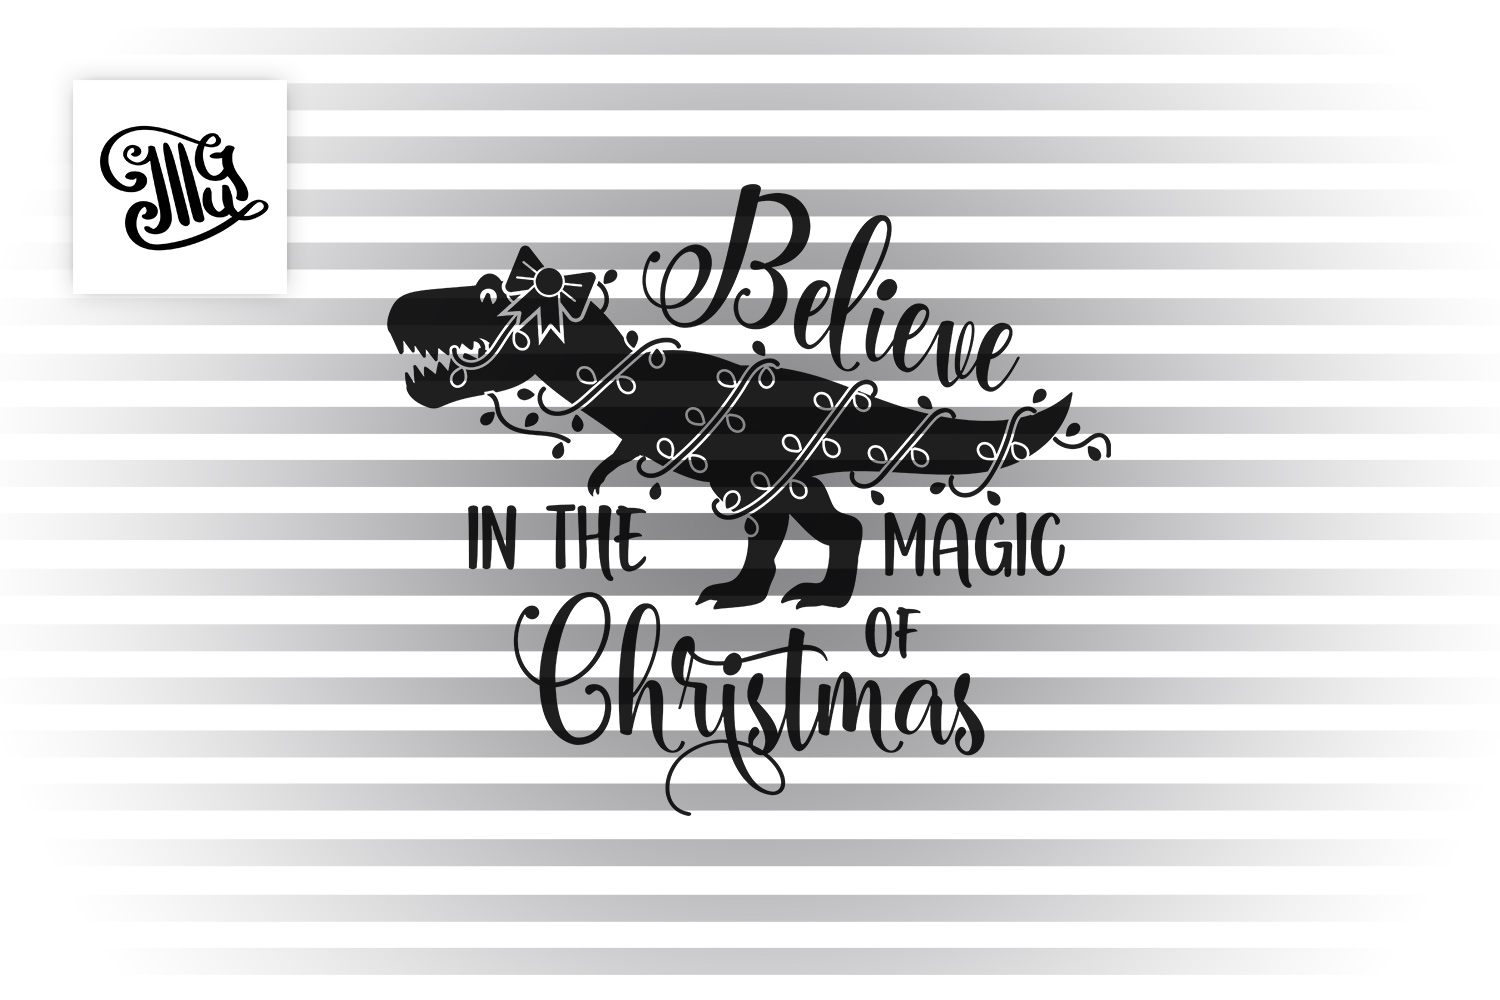 Believe in the magic of Christmas - dinosaur for girl example image 2